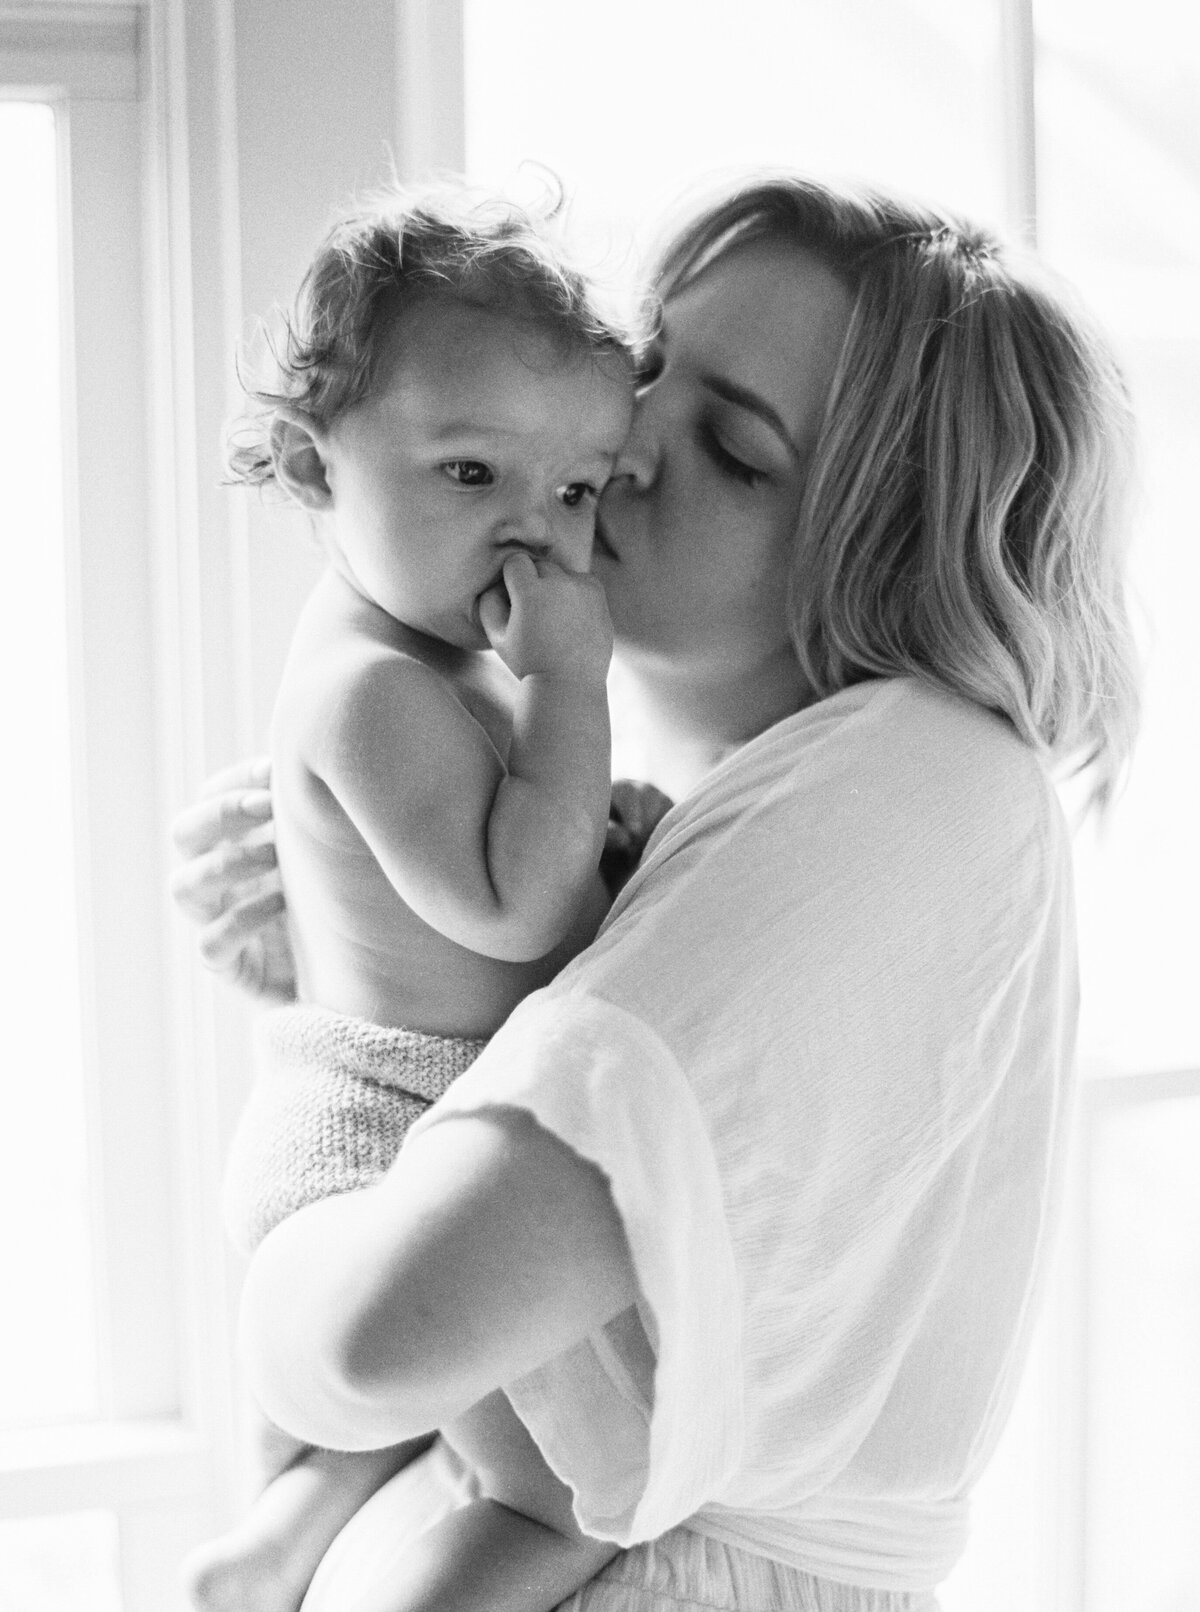 Motherhood-photography-session-fount-melanie-gabrielle-26